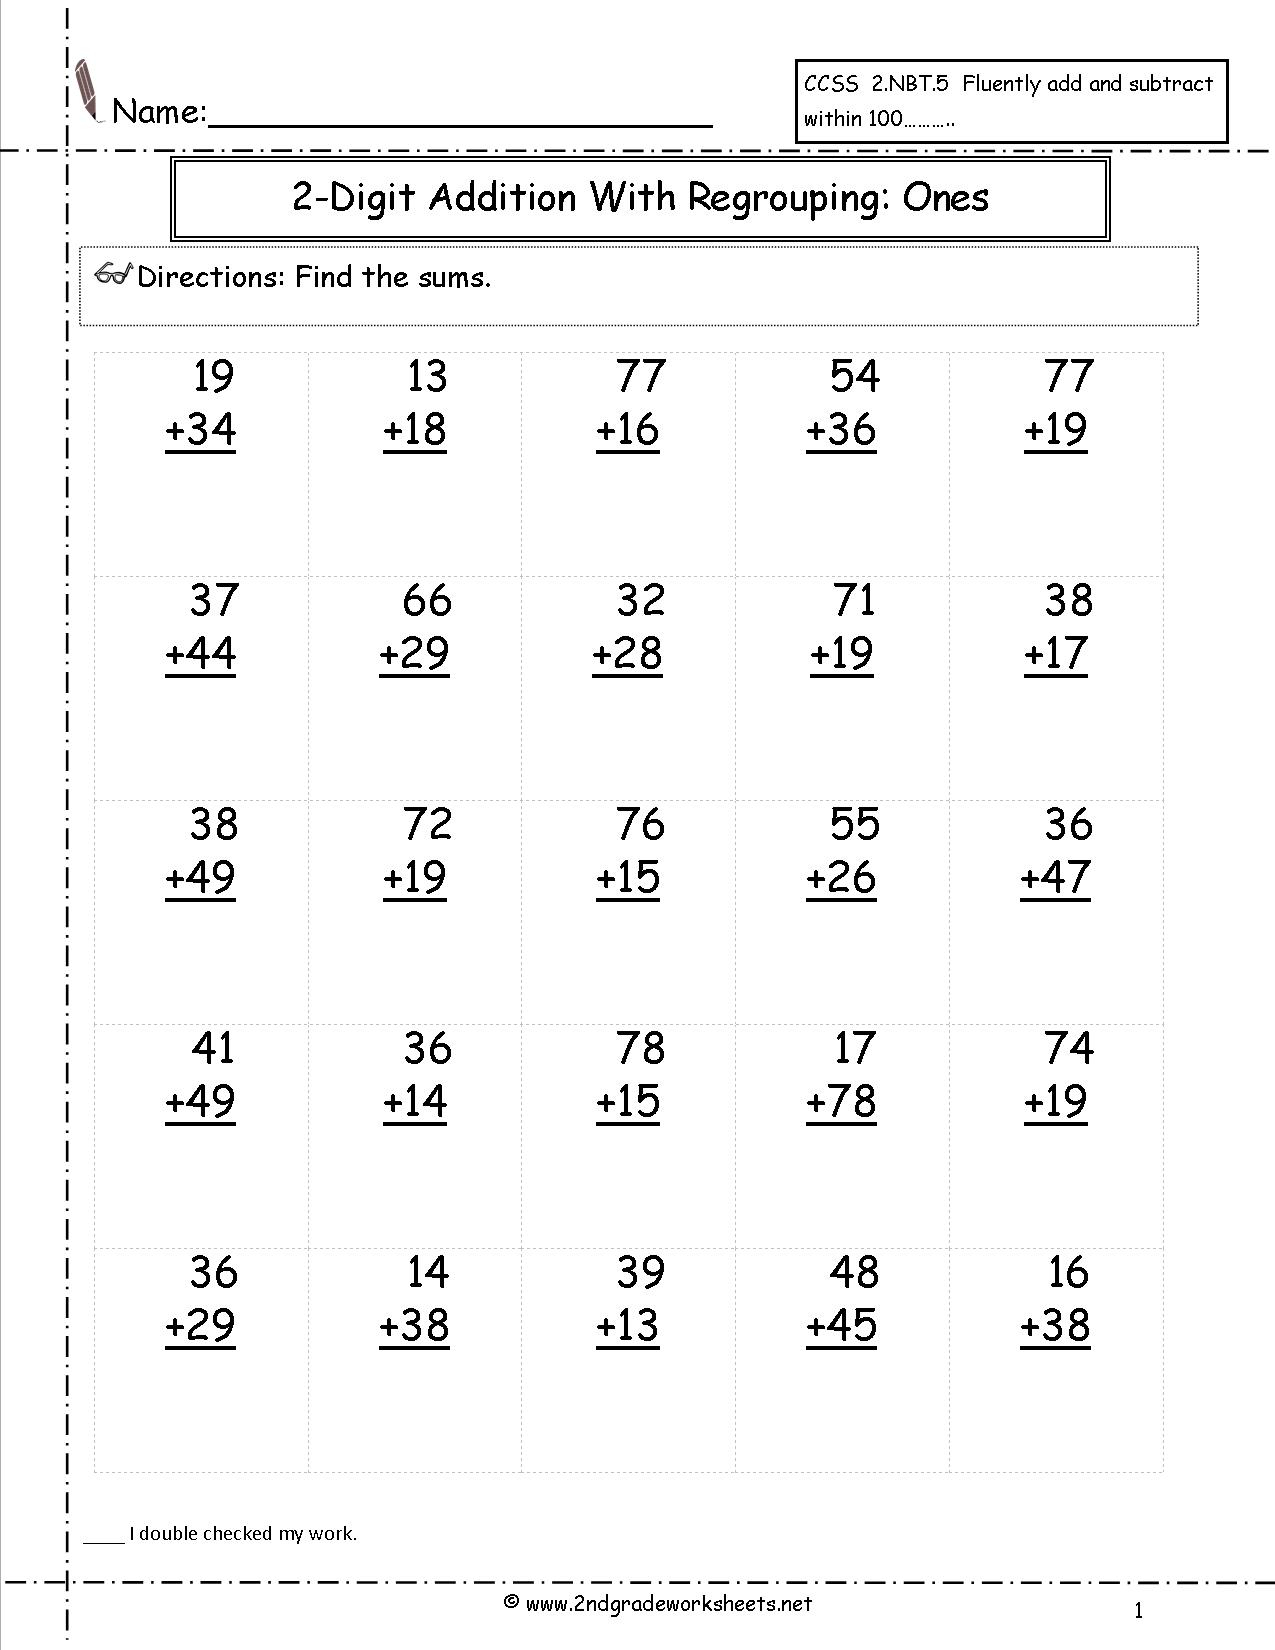 Free Math Worksheets And Printouts | Free Printable Math Worksheets Addition And Subtraction